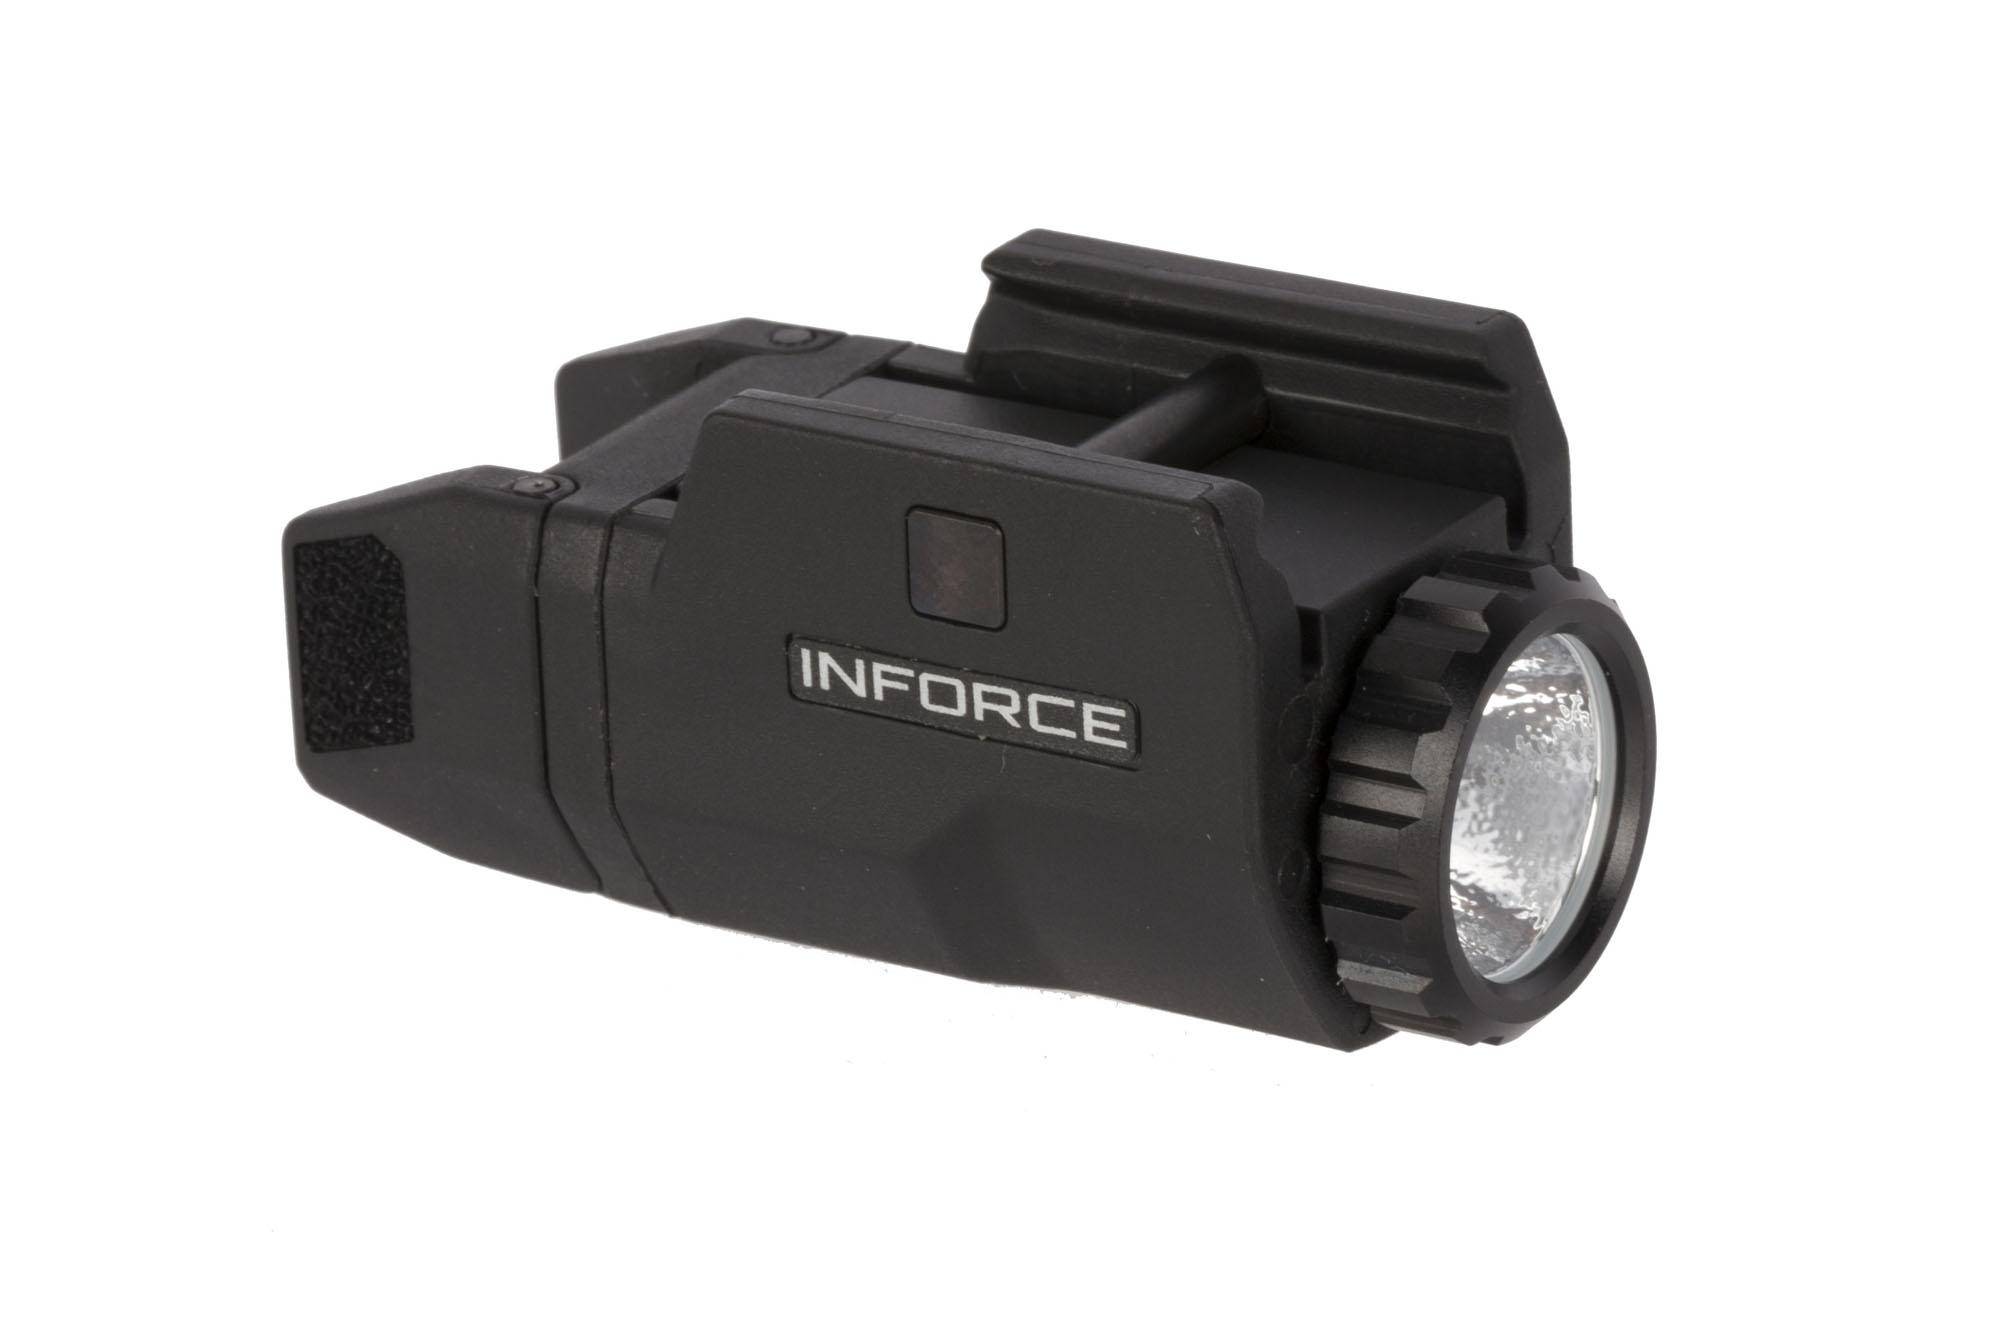 The Inforce APLc Compact 200 Lumen Pistol Light features the same compact design of the gen 3 in a smaller package